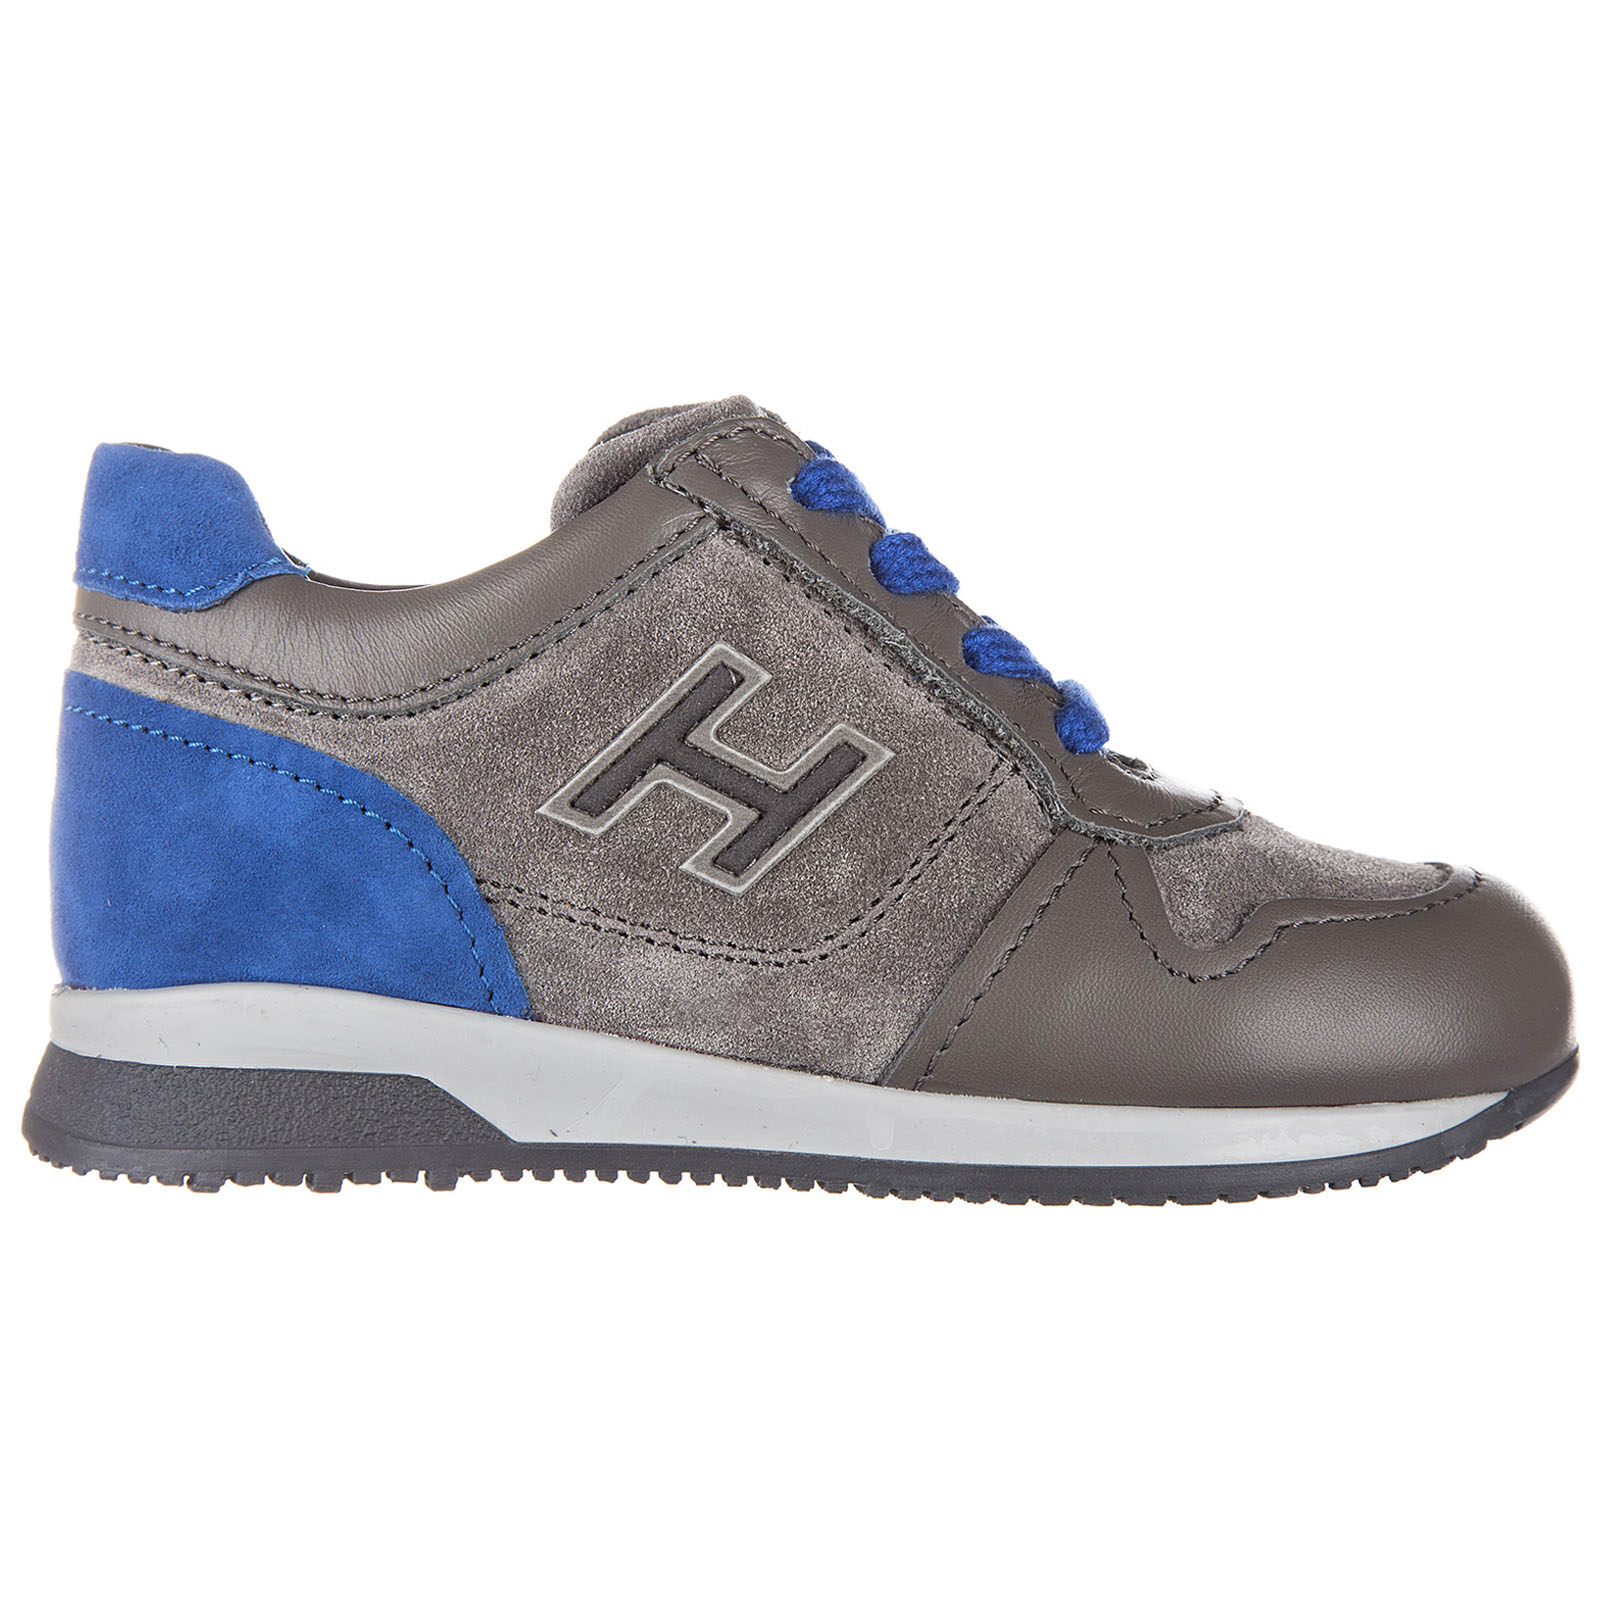 Boys shoes baby child sneakers suede leather elective h flock zip